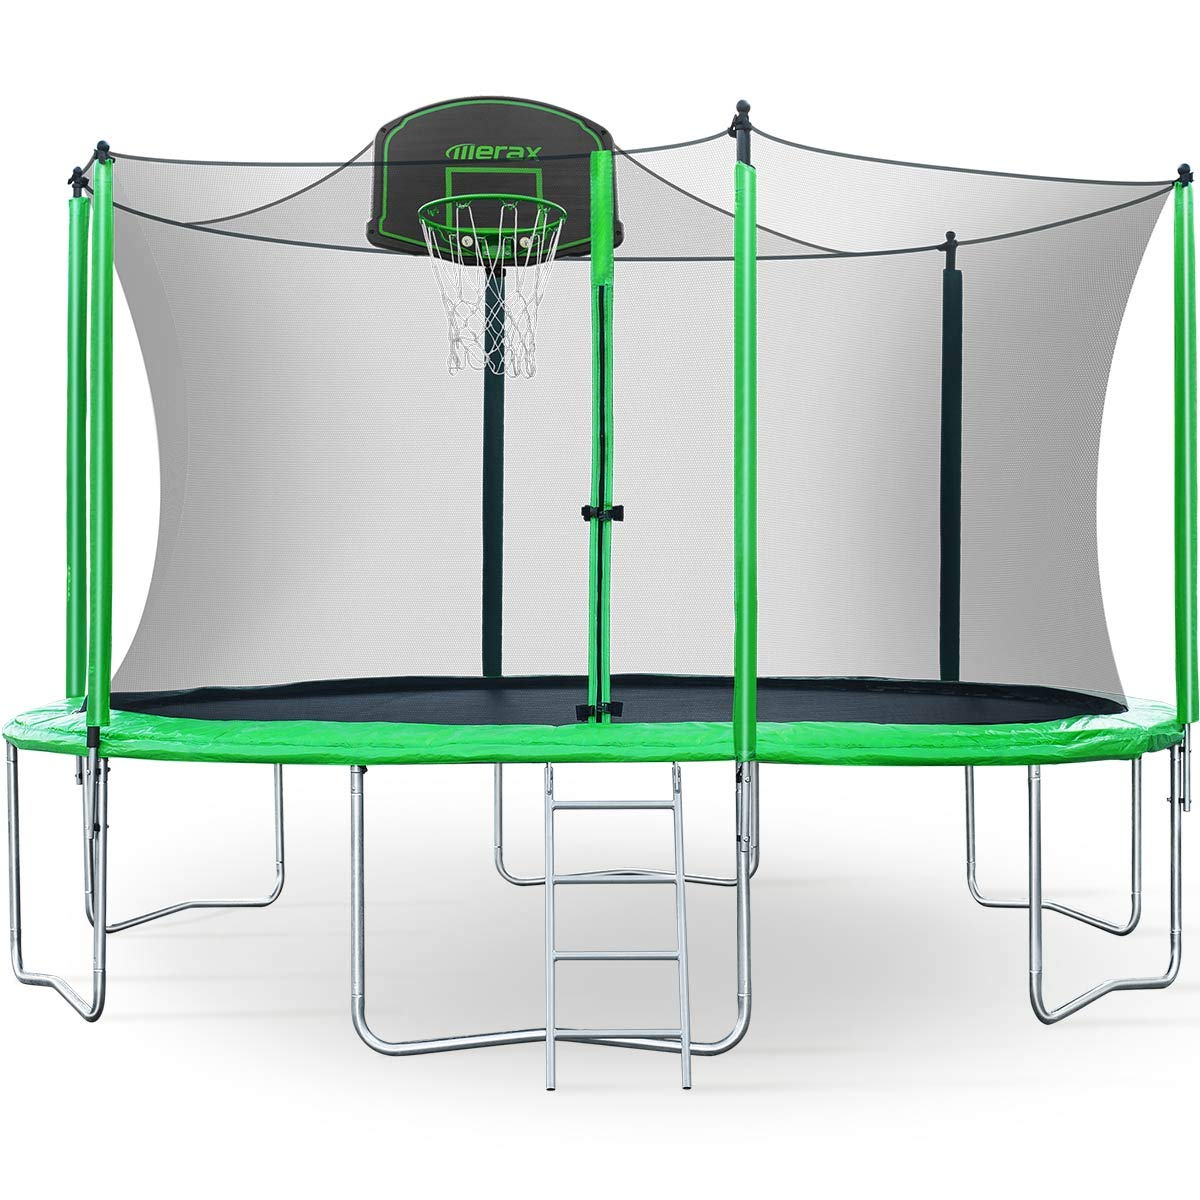 Merax 14FT 12FT Trampoline with Safety Enclosure Net, Basketball Hoop and Ladder - BV Certificated - Basketball Trampoline (12 Feet)